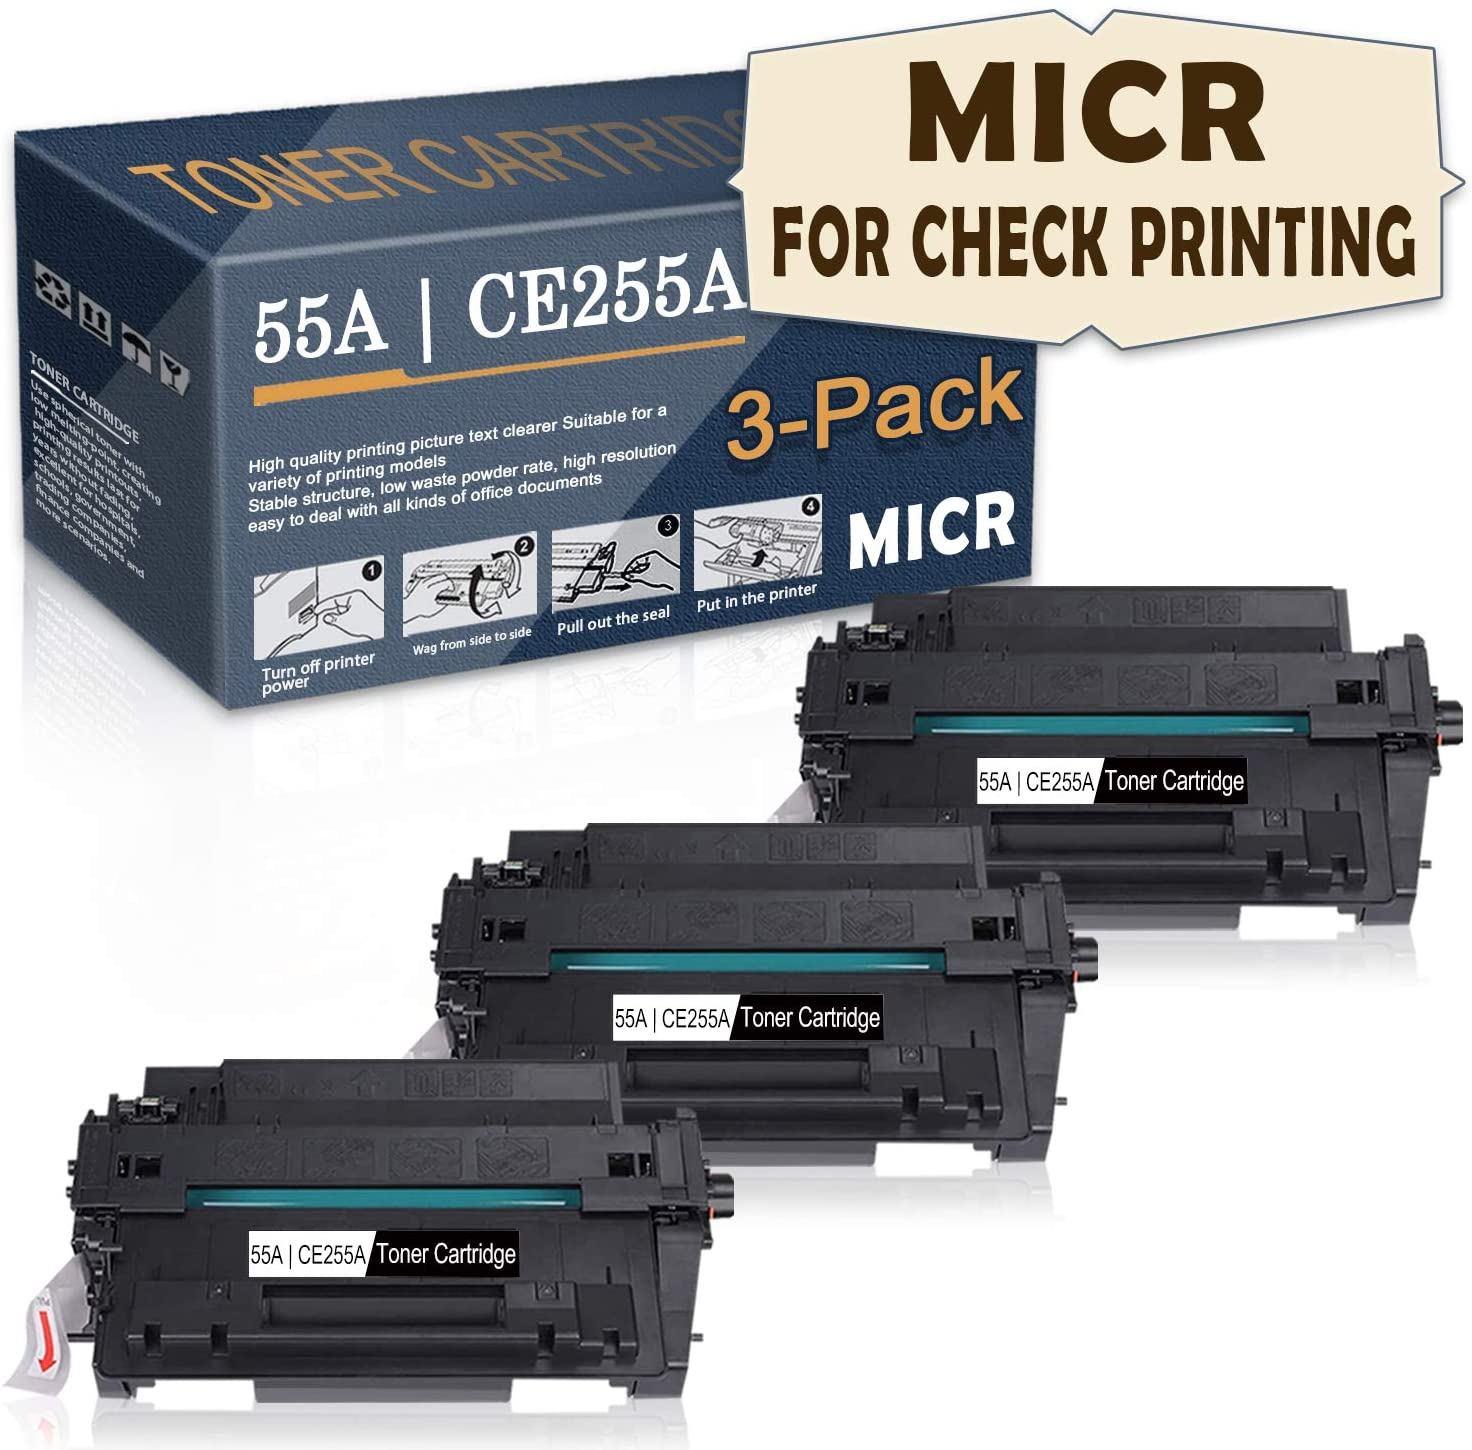 Satink Compatible 55A | CE255A MICR Toner Cartridge (For check printing) Replacement for HP LaserJet Pro MFP M521dn/ P3015n/P3015/P3015dn/P3015d/P3015x/M521dw/500 MFP M525f/M525c Printer,3 Pack Black.